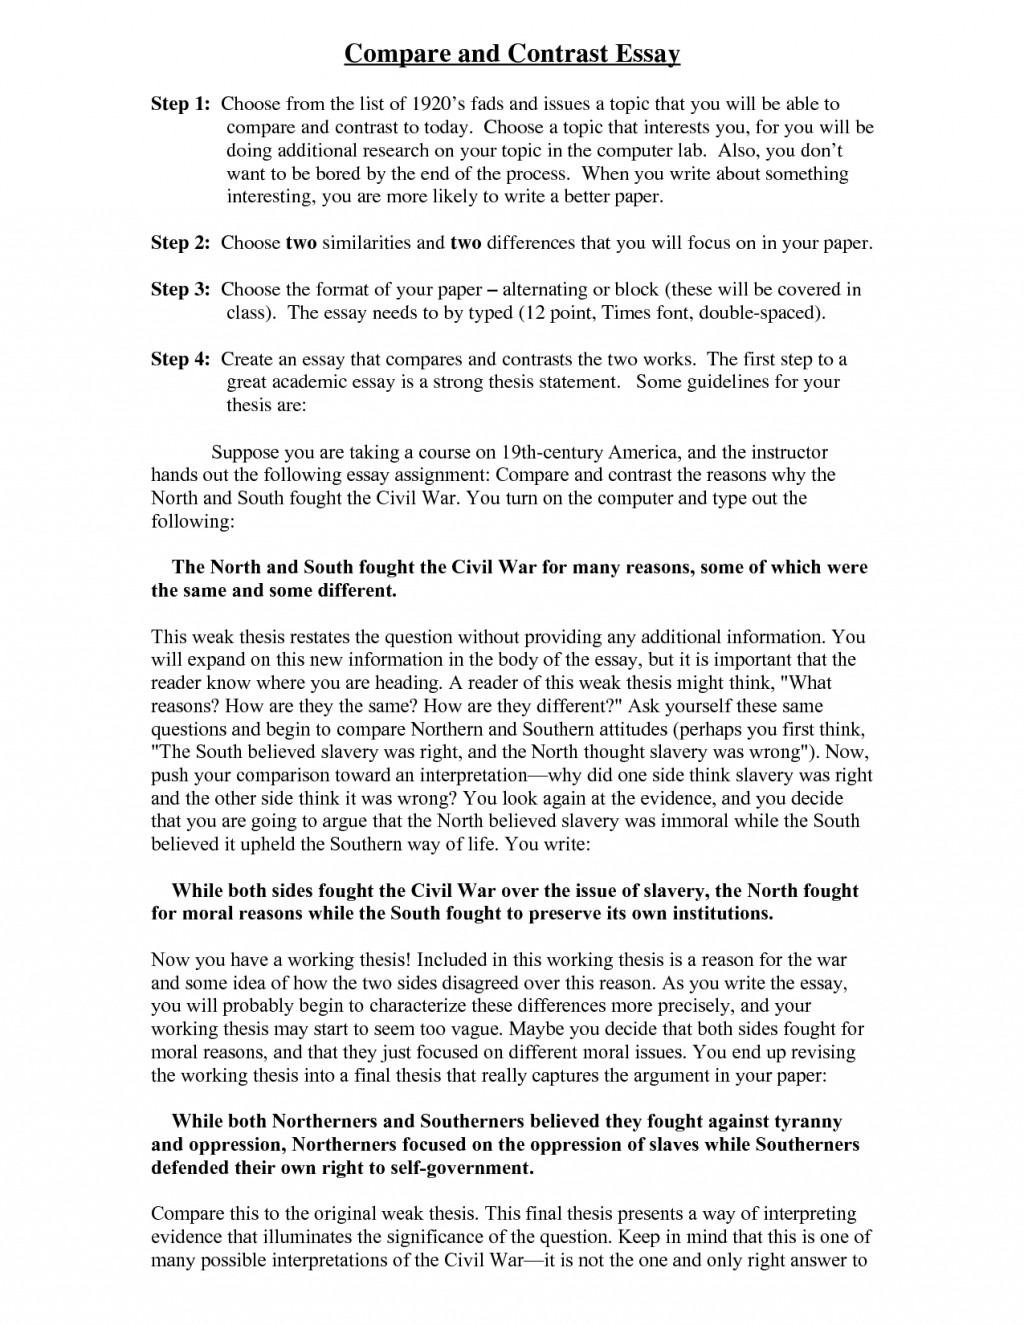 015 How To Write Comparison Essay Topic Compare And Contrast Example Mla Format Art Thesis Custom Resume Incredible A Introduction Large